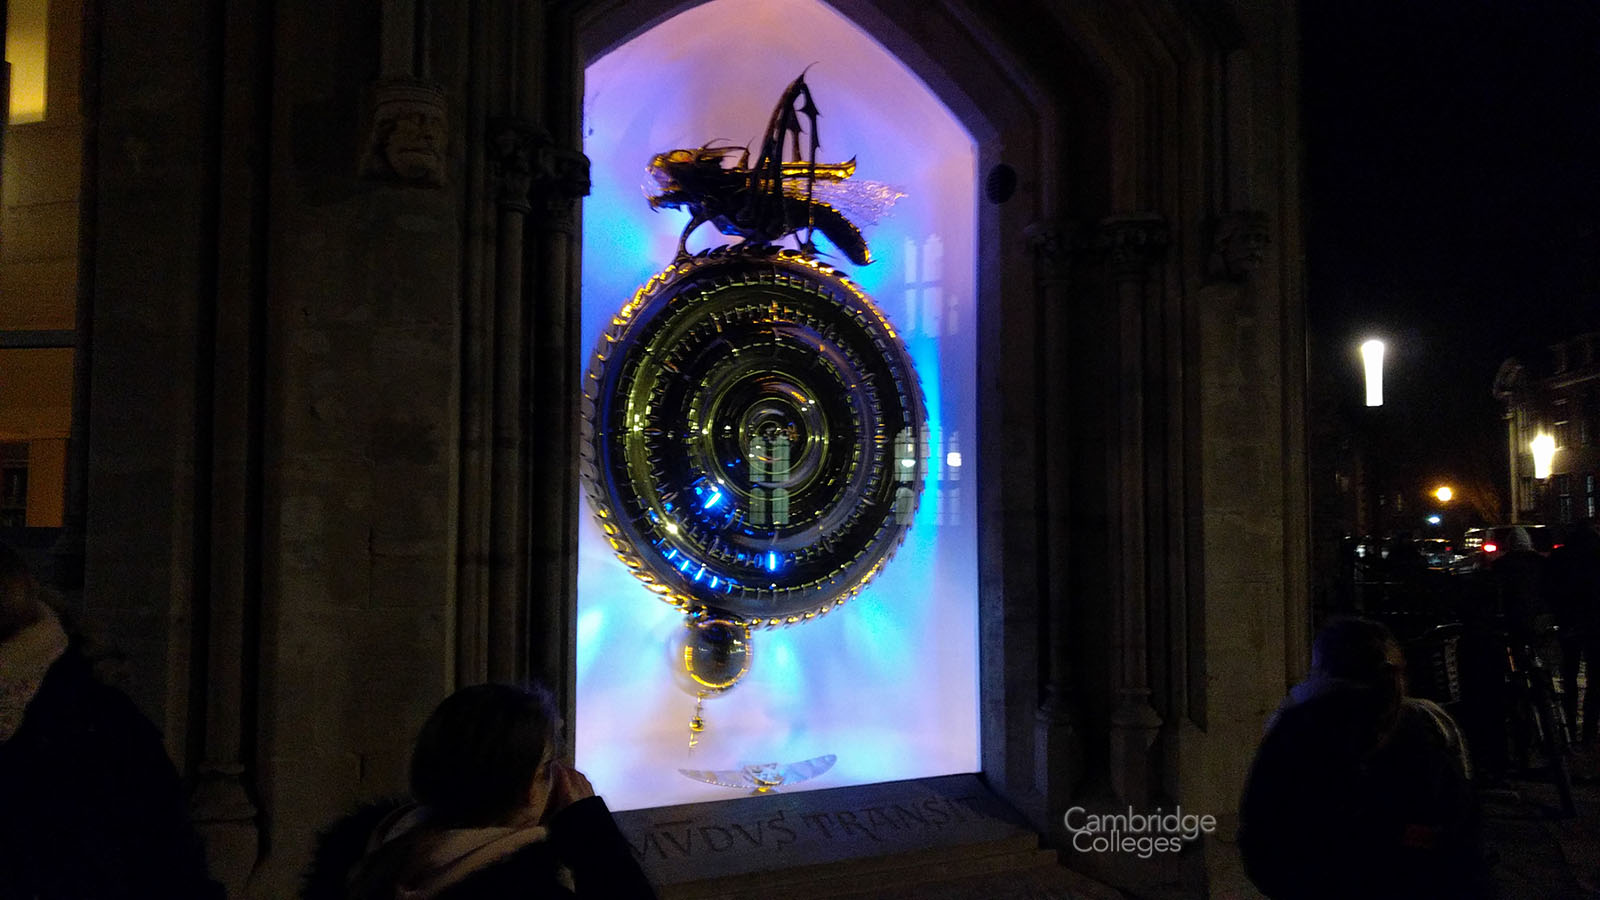 The Corpus chronophage at night